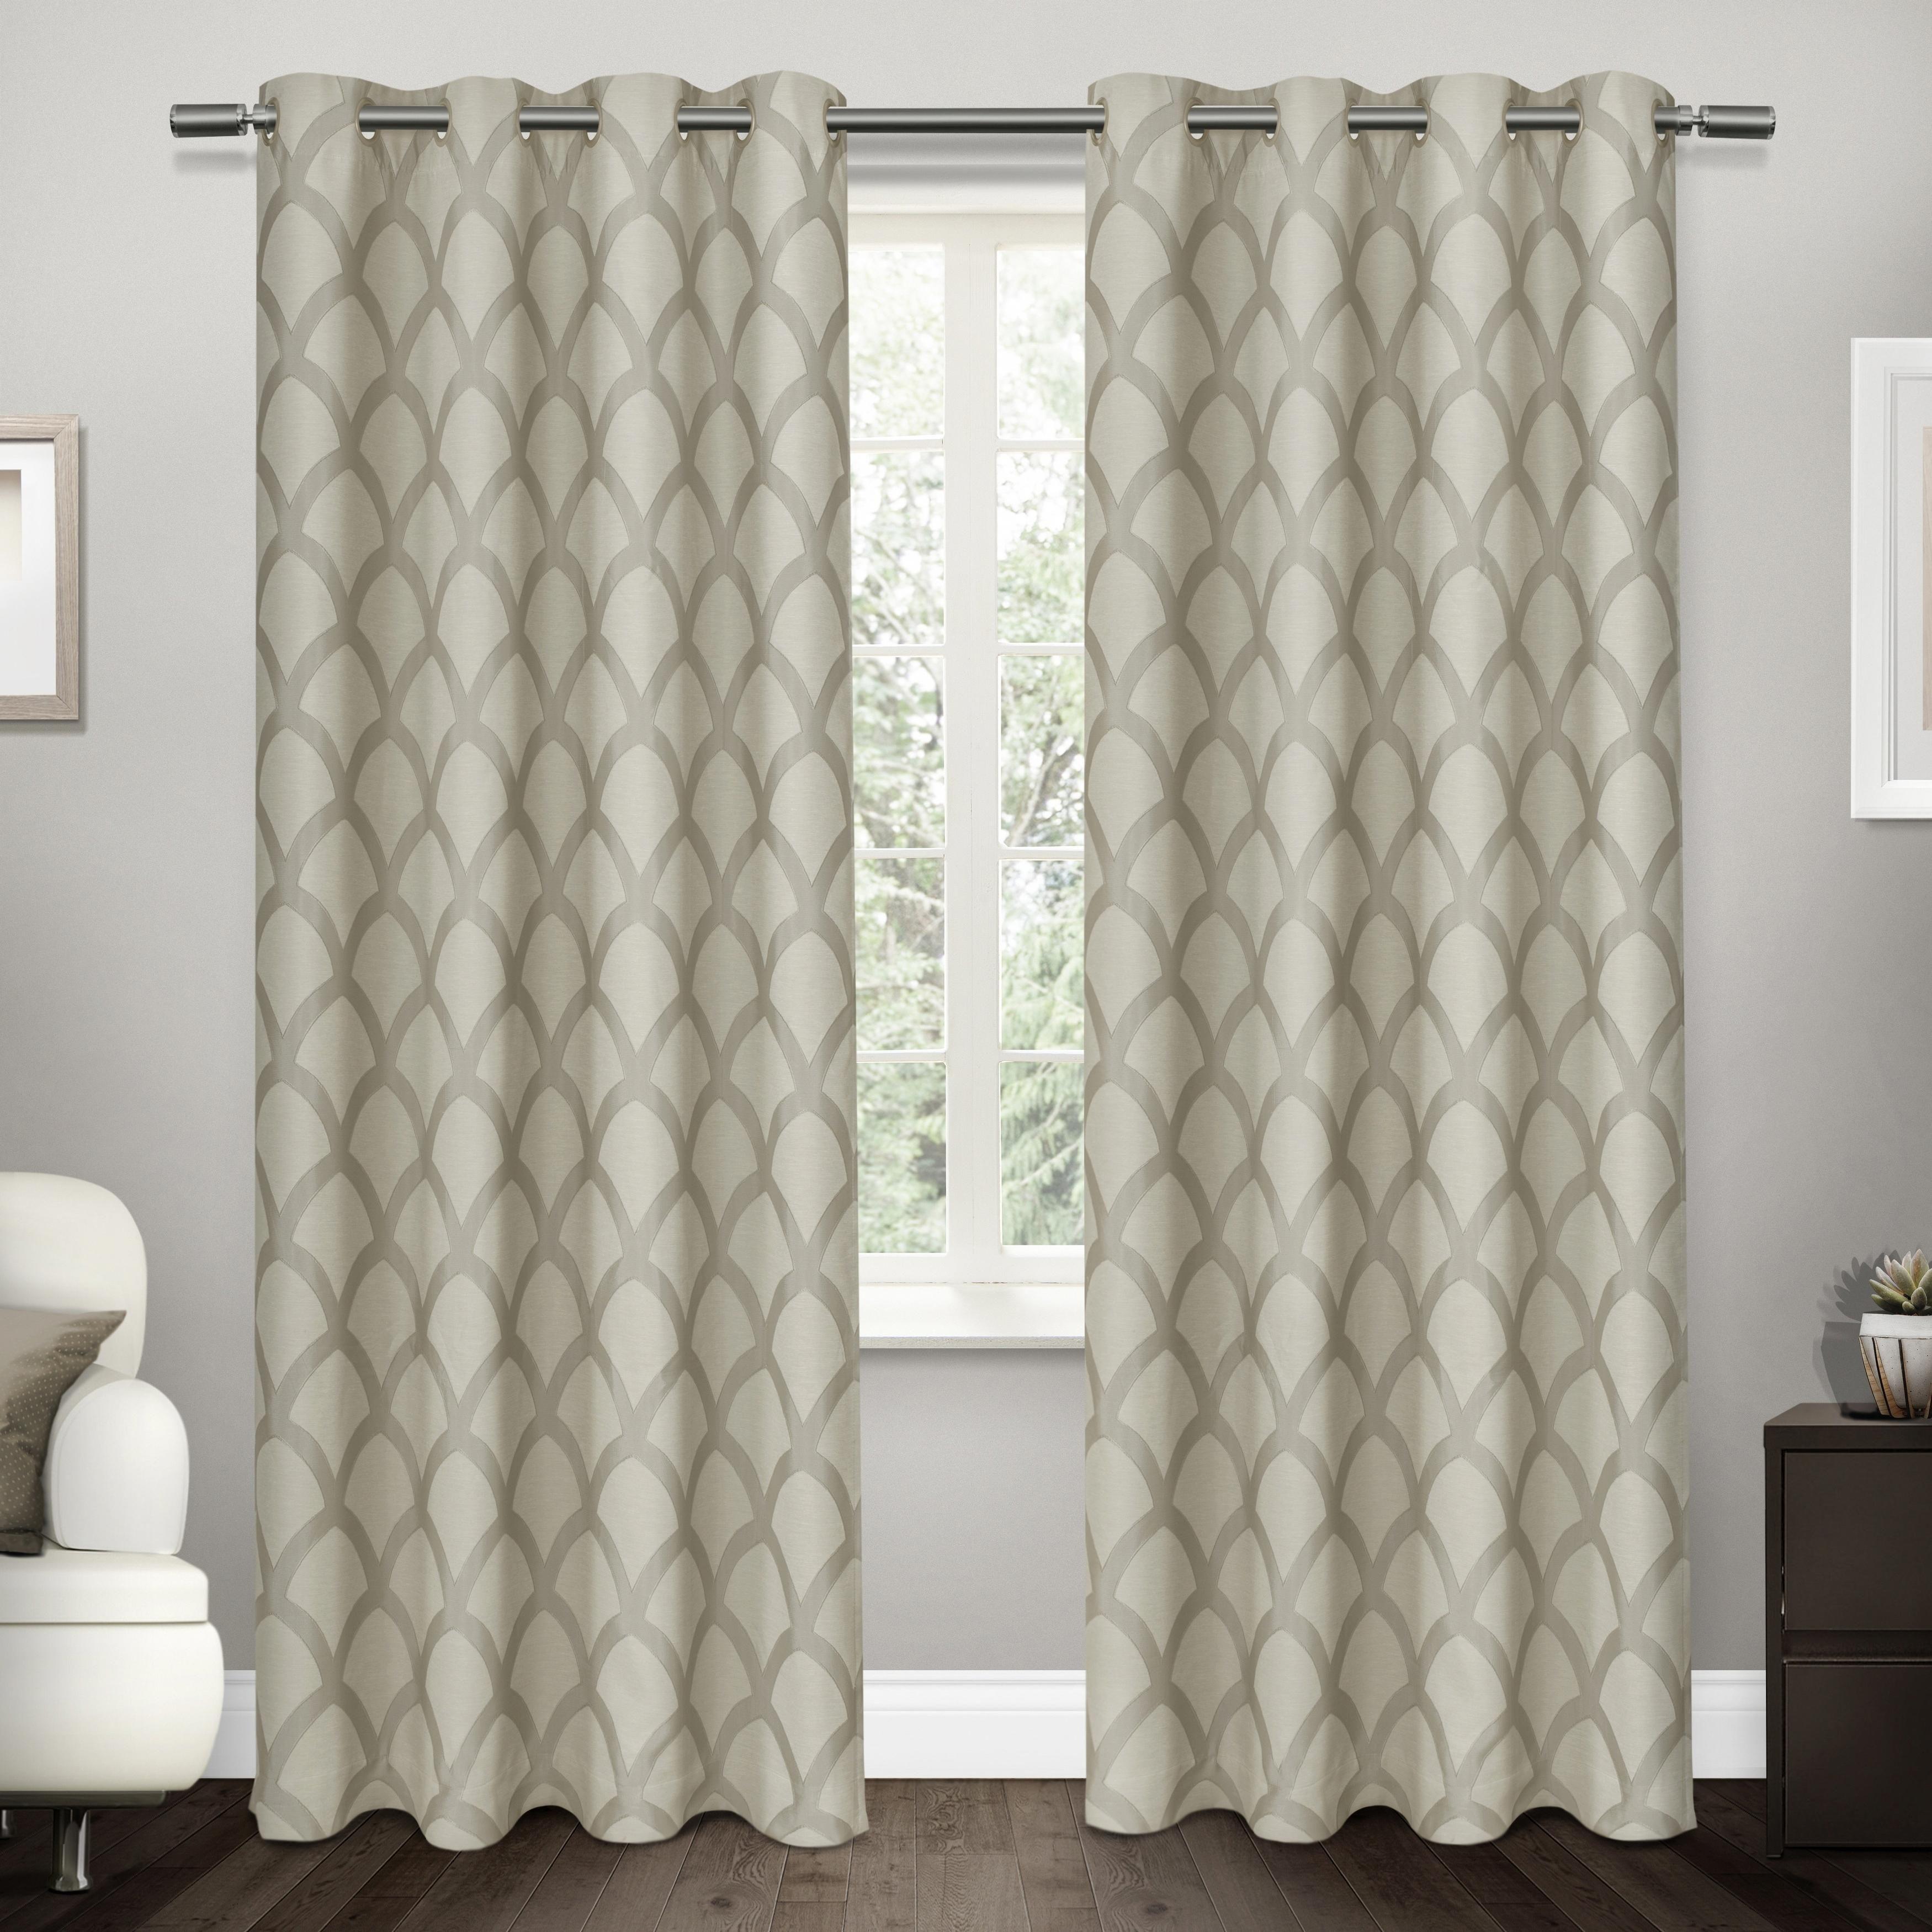 Ati Home Electra Thermal Woven Blackout Grommet Top Curtain Regarding Easton Thermal Woven Blackout Grommet Top Curtain Panel Pairs (View 3 of 20)